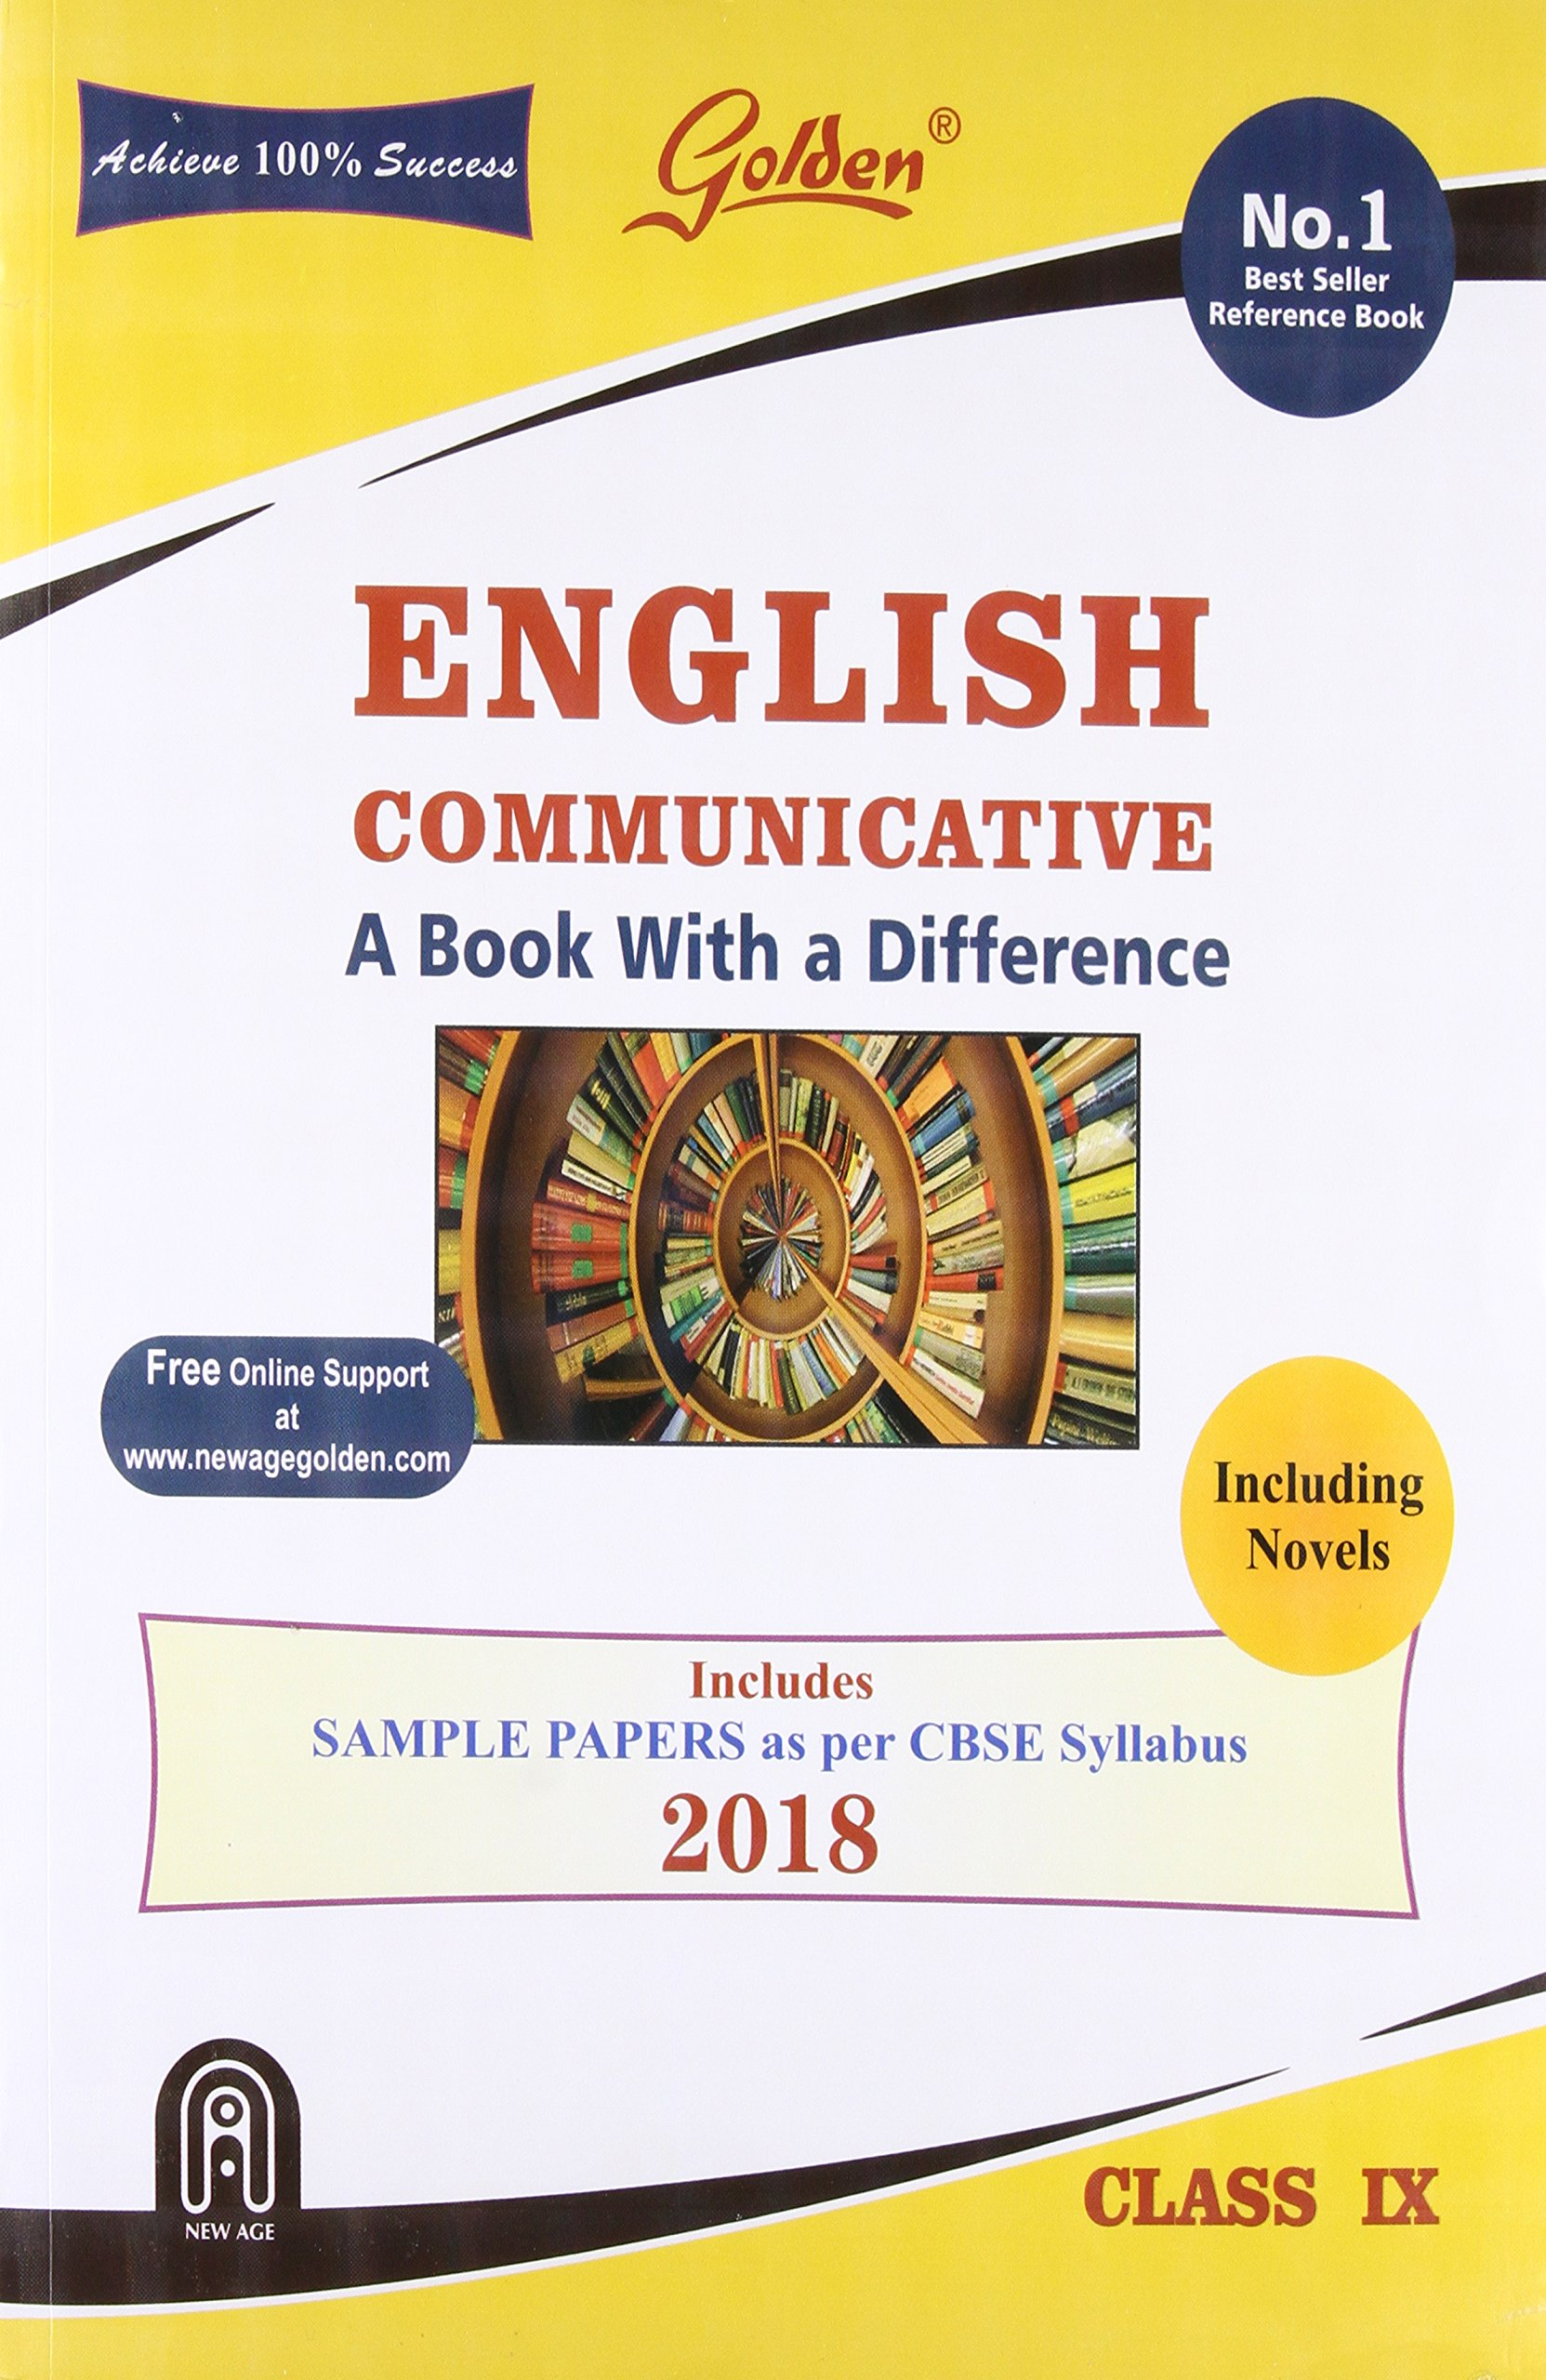 Golden English Communicative: With Sample Papers A book with Difference for  Class-9 Old Edition: Amazon.in: Gupta R.K.: Books